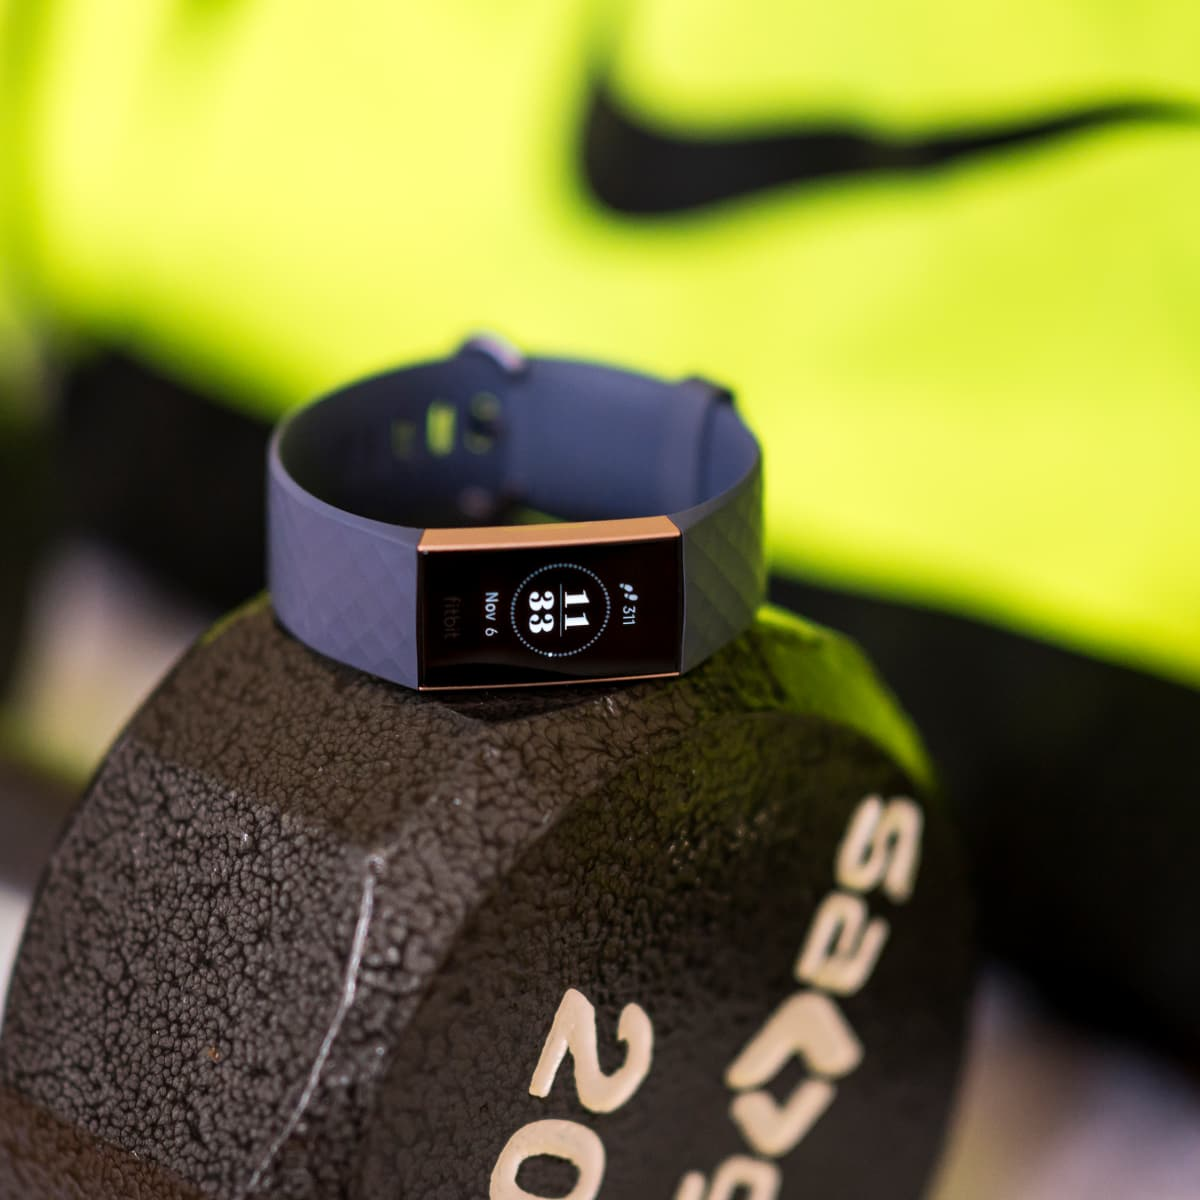 The Best Fitness Trackers of 2019 - Reviewed Home & Outdoors